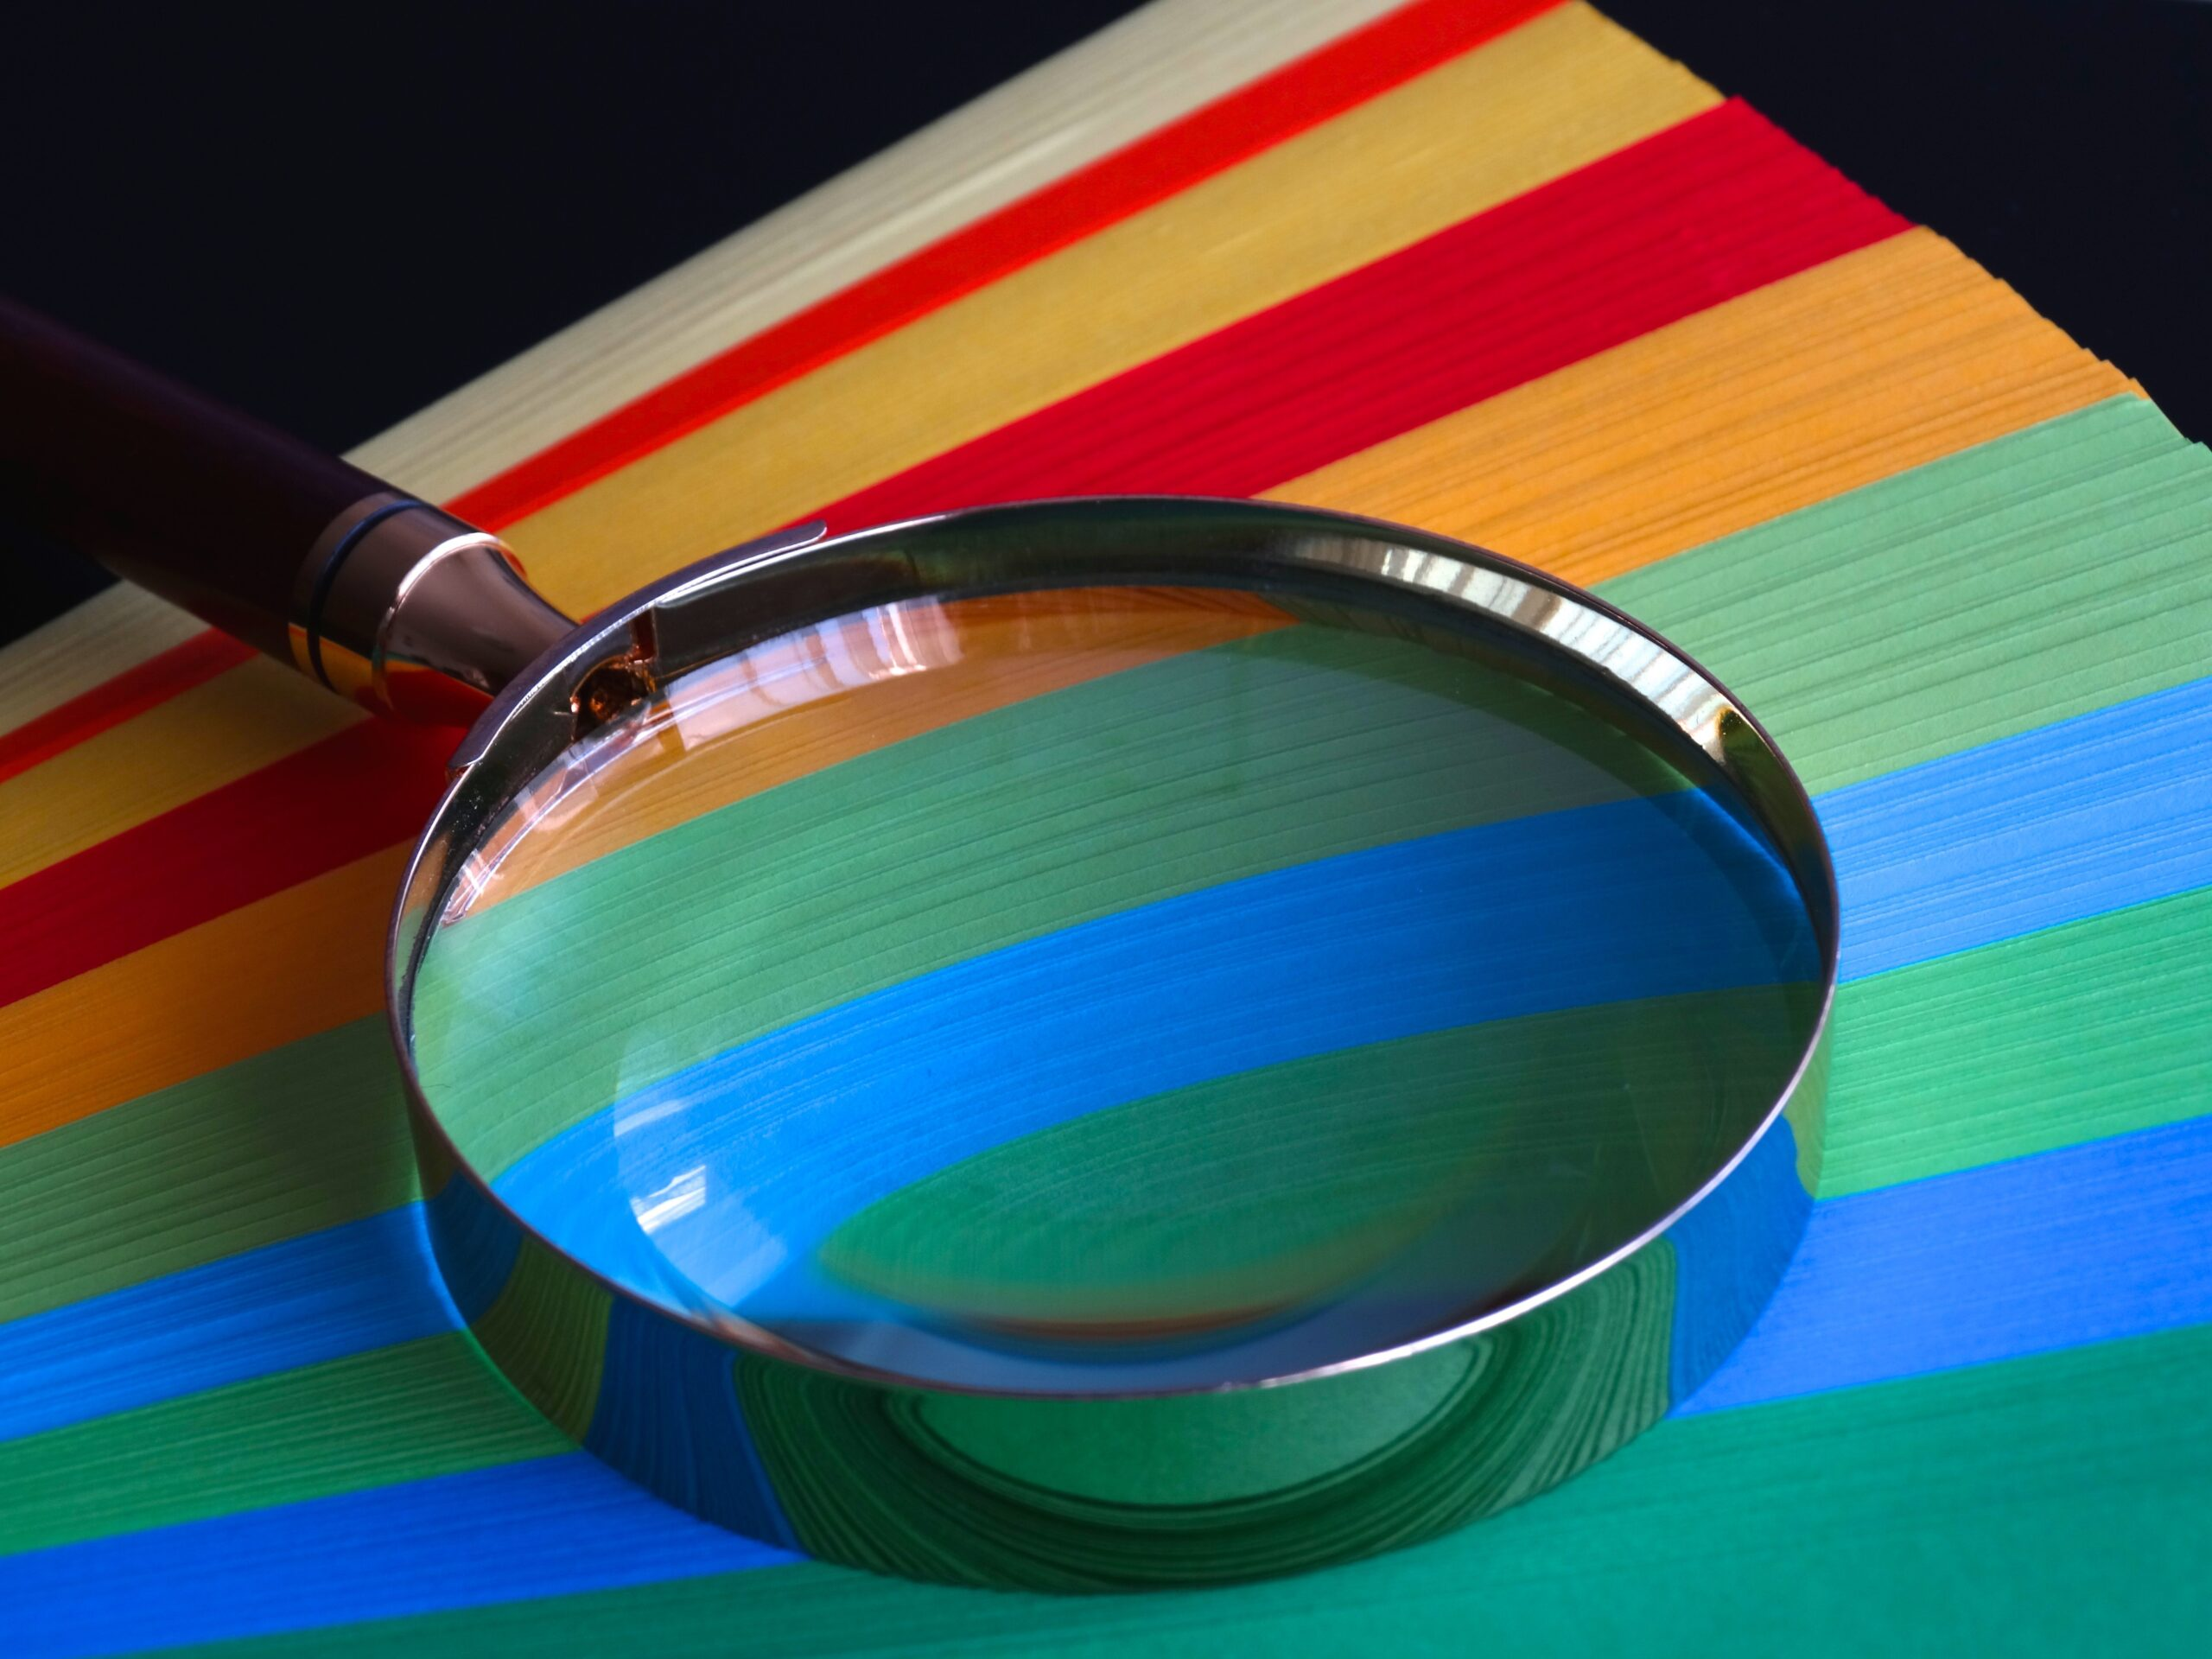 magnifying glass on top of colorful papers